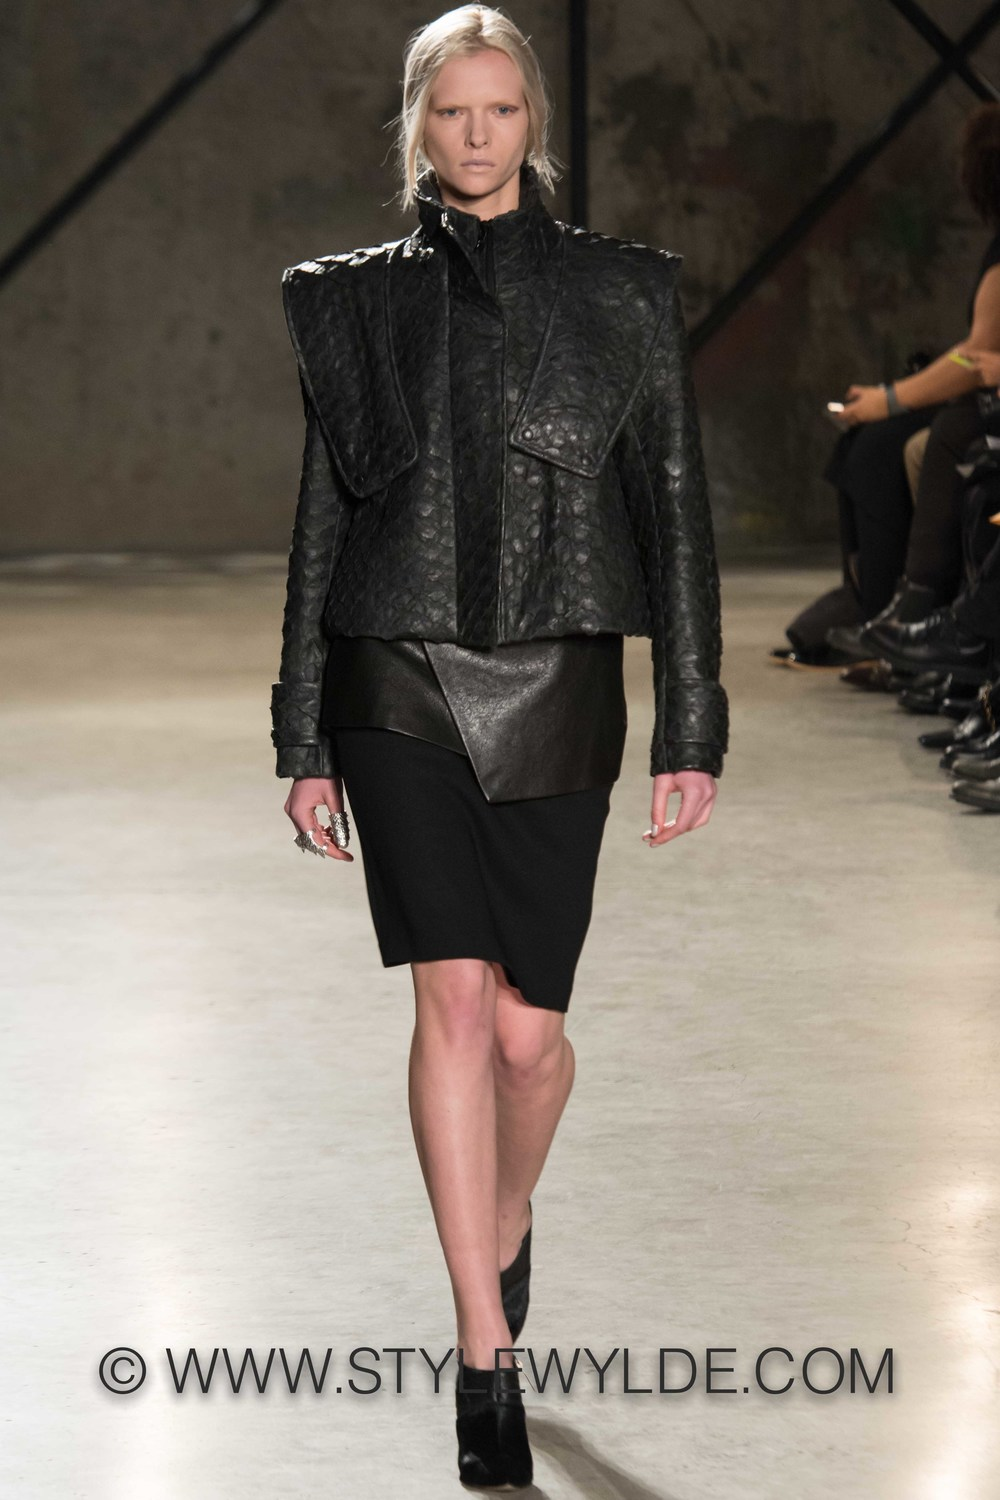 stylewylde_sally_lapointe_fw_2014-28.jpg